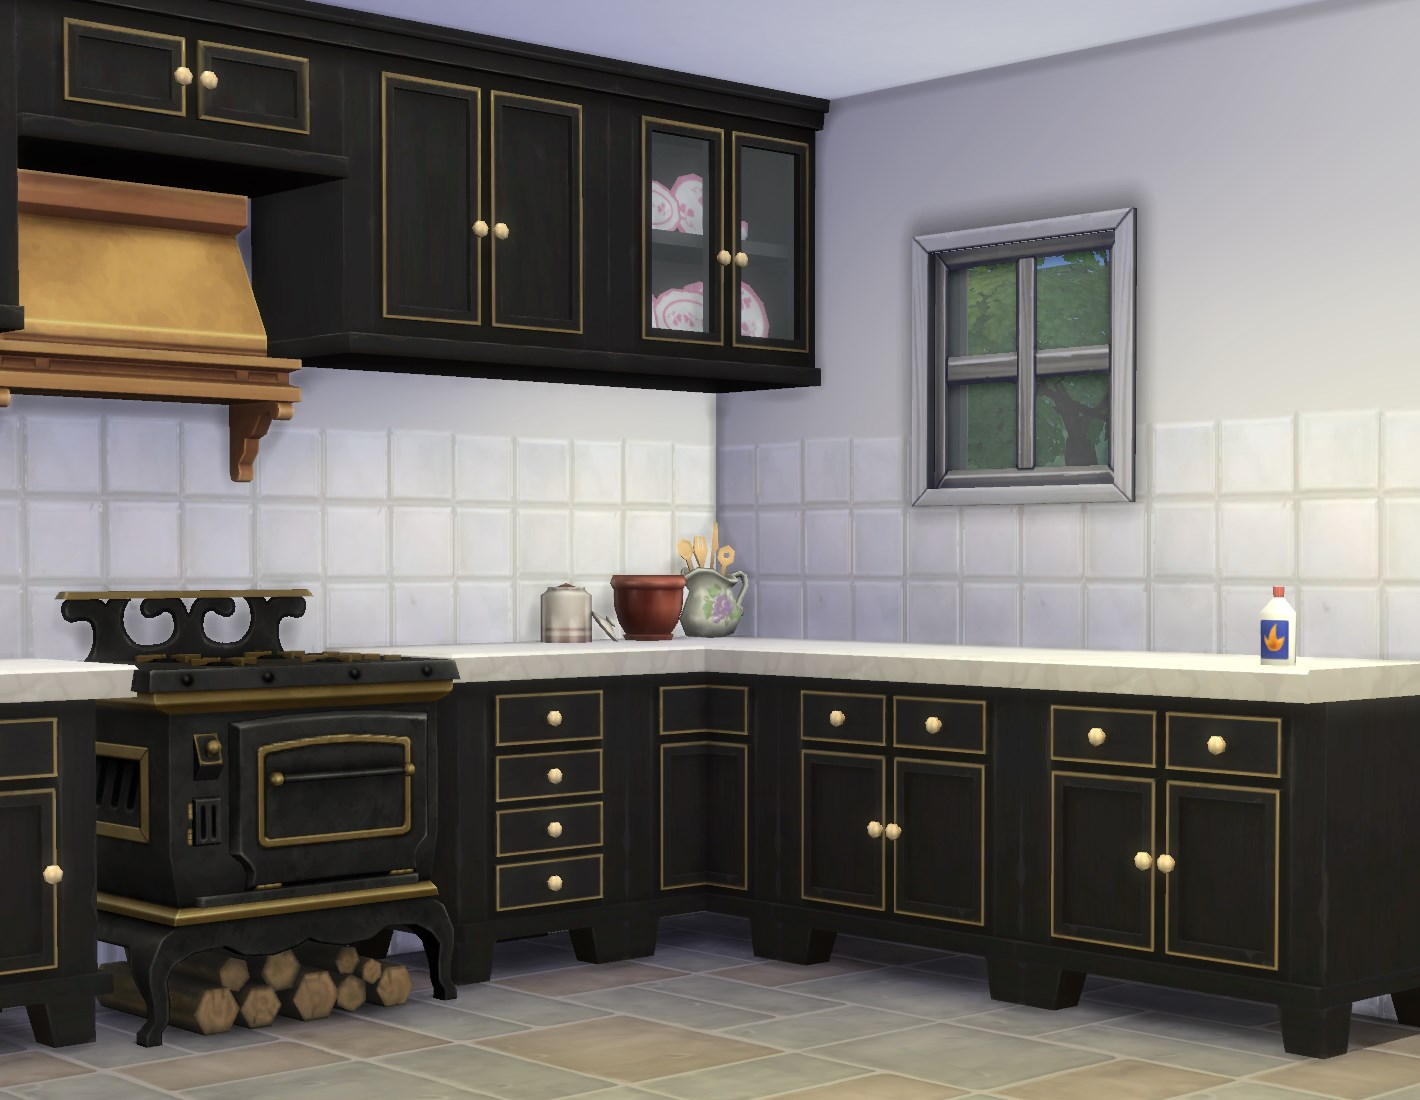 Mod The Sims - Country Kitchen